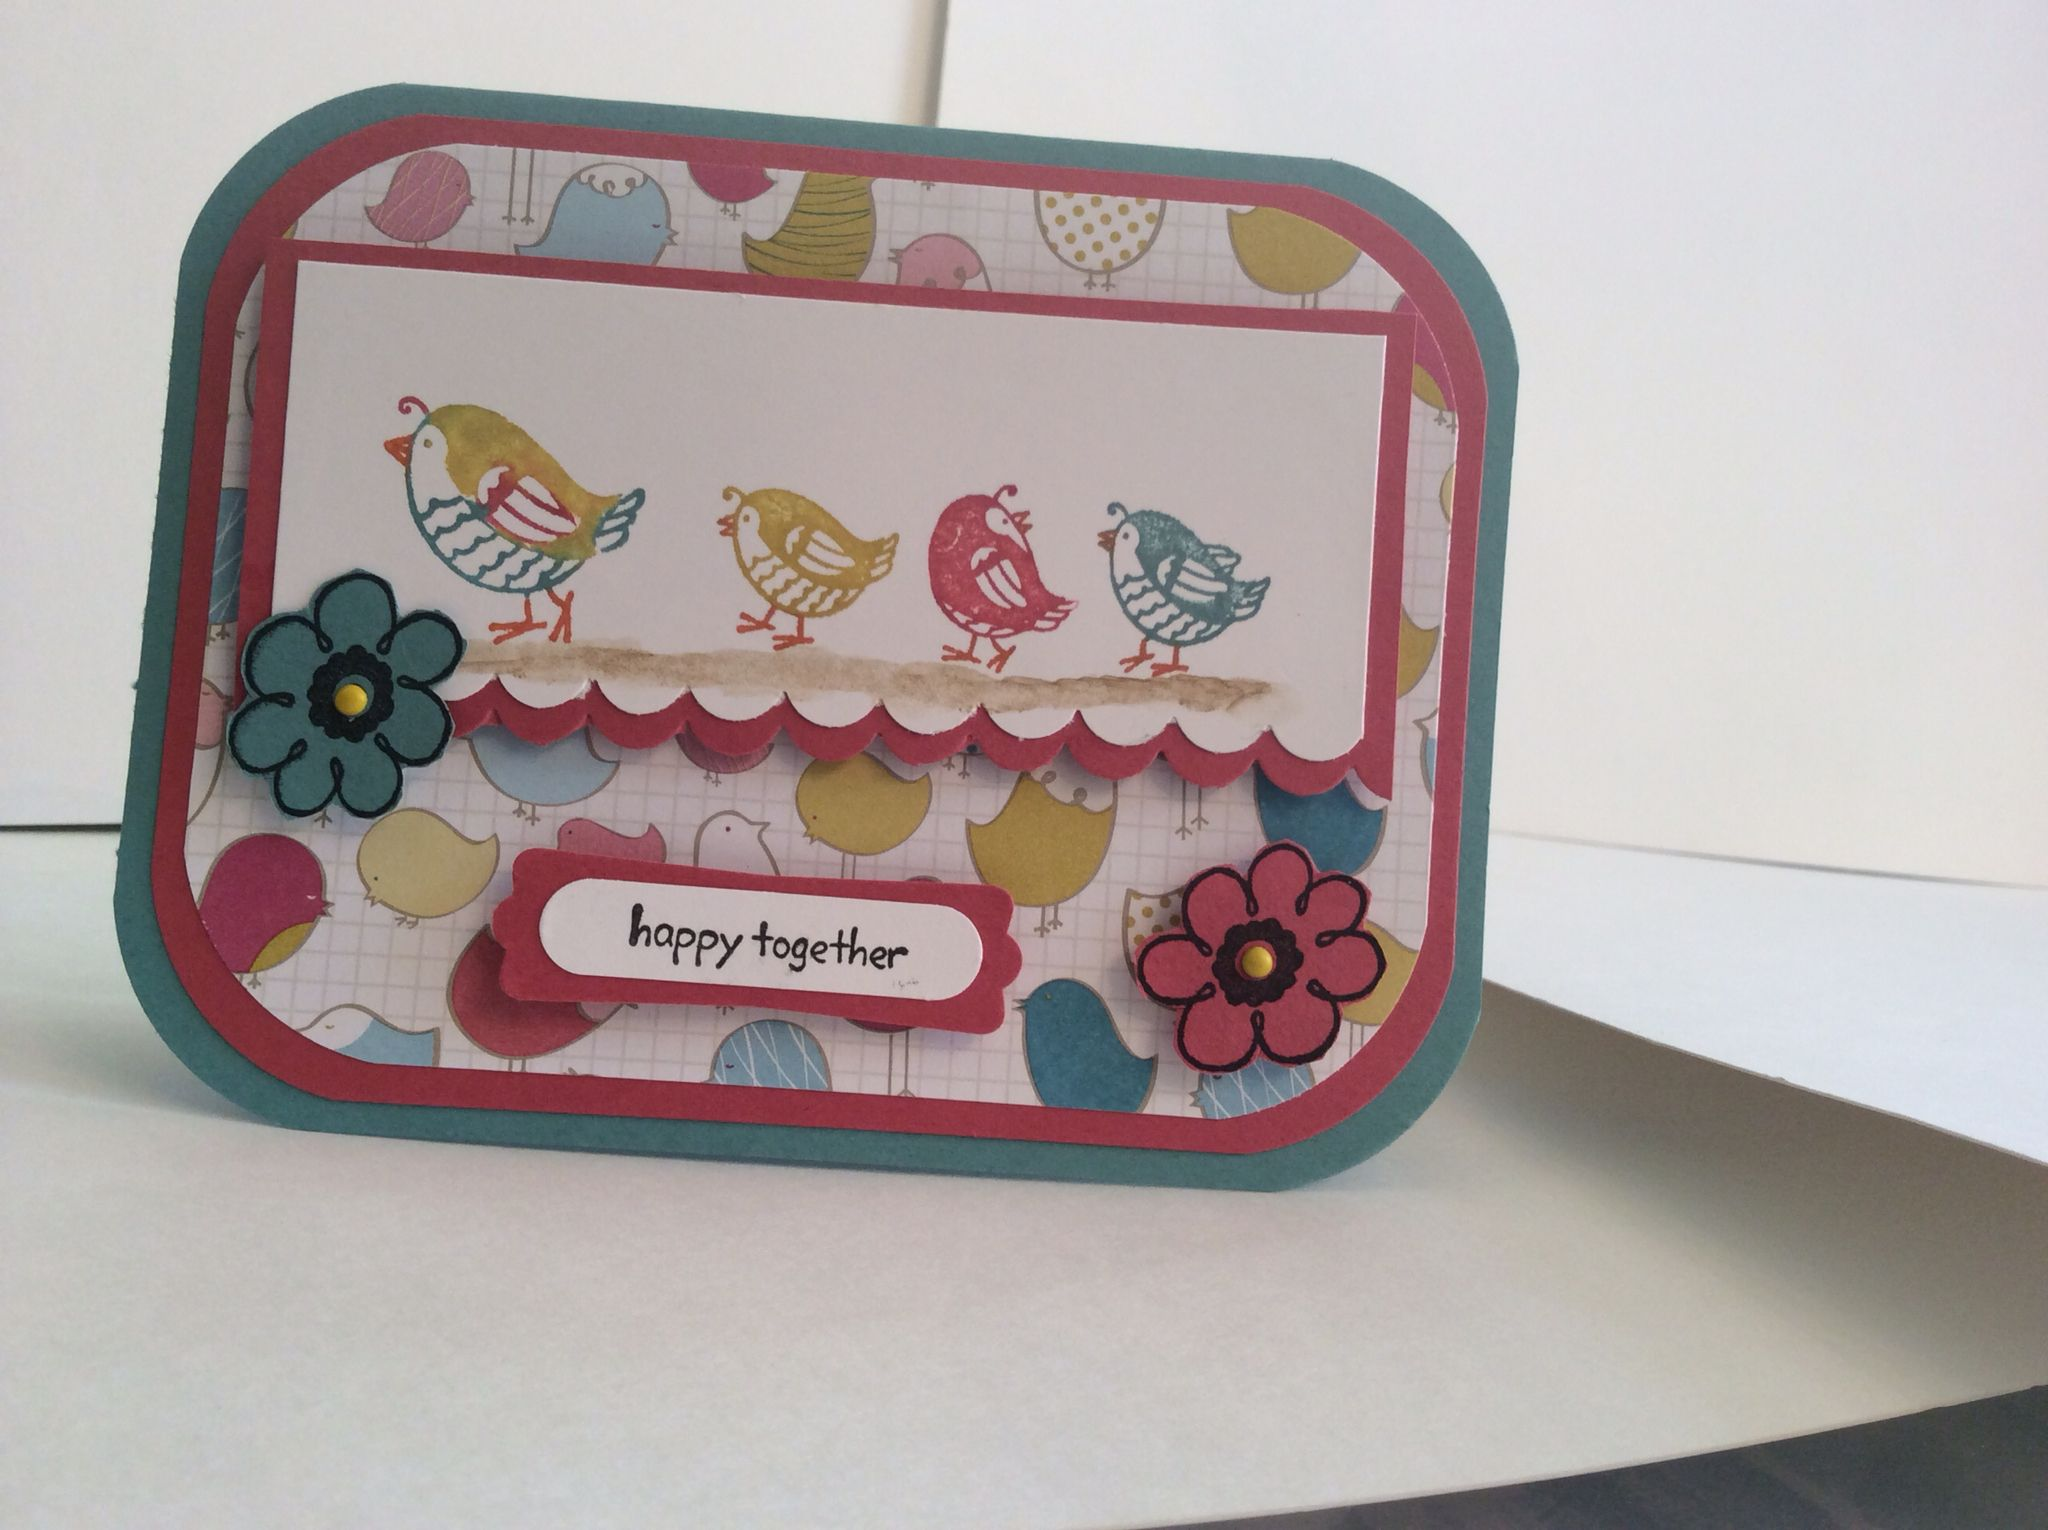 Happy Together by Stampin Up. Used lost lagoon, primrose petals card stock and Birds of a Feather DSP.